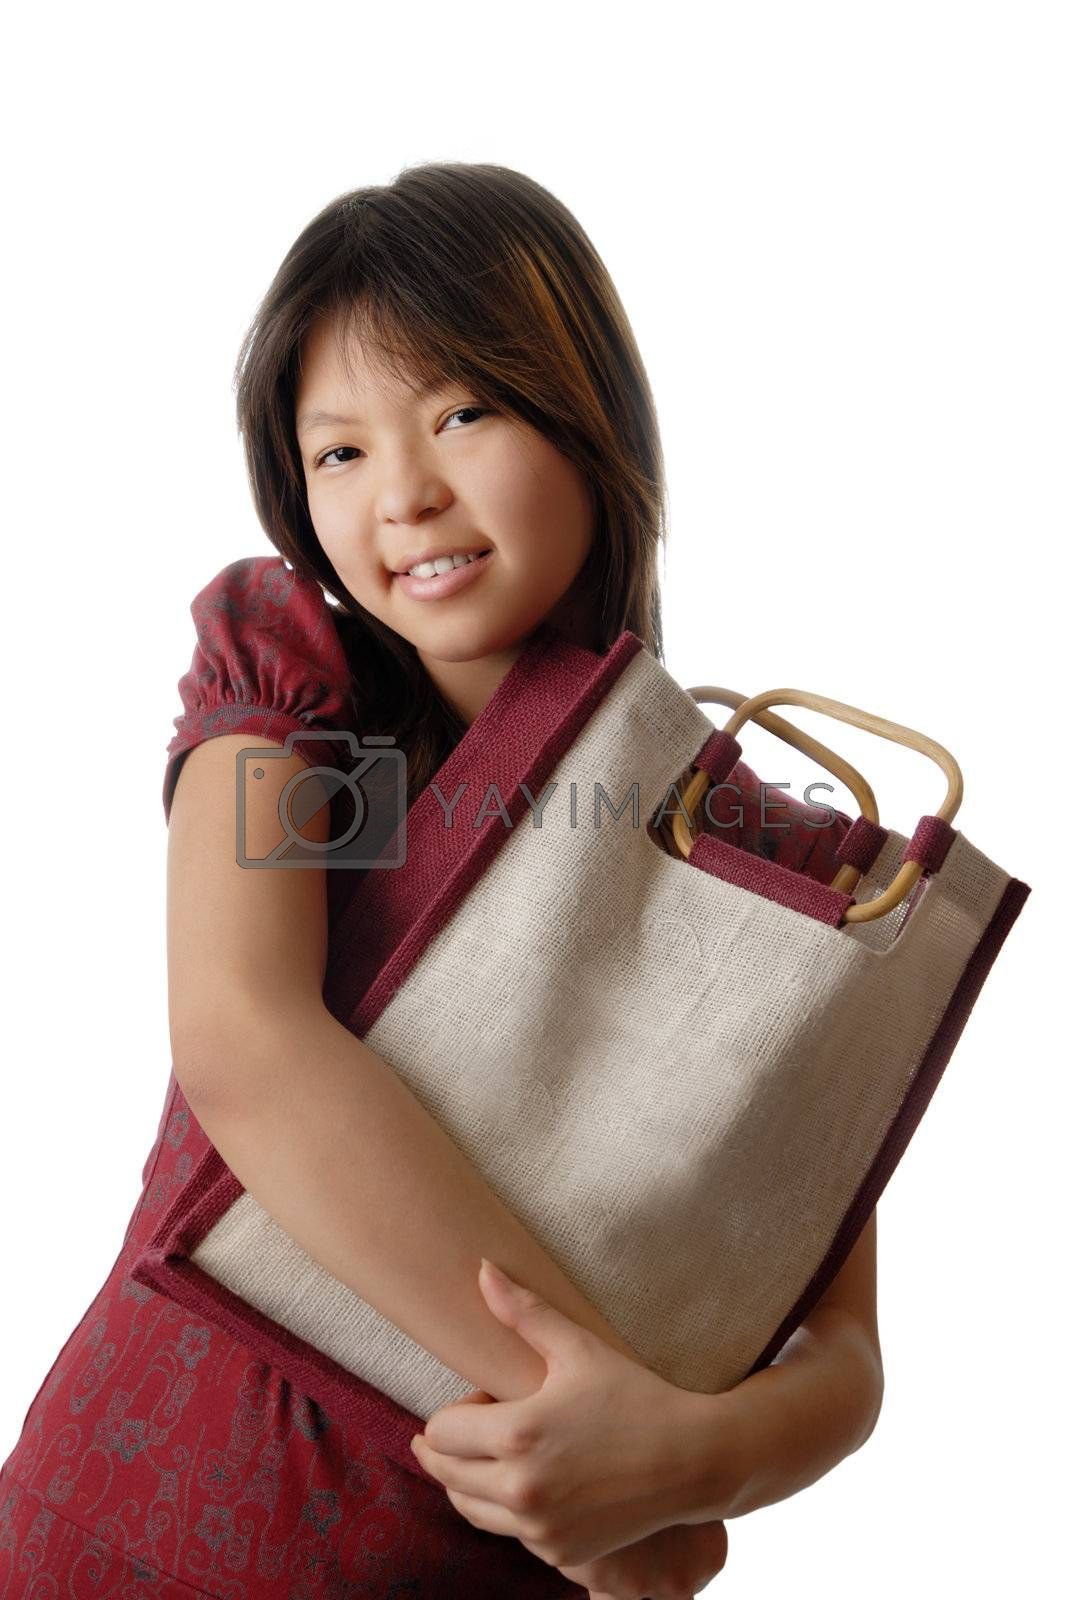 Young model with shopping bag in hands